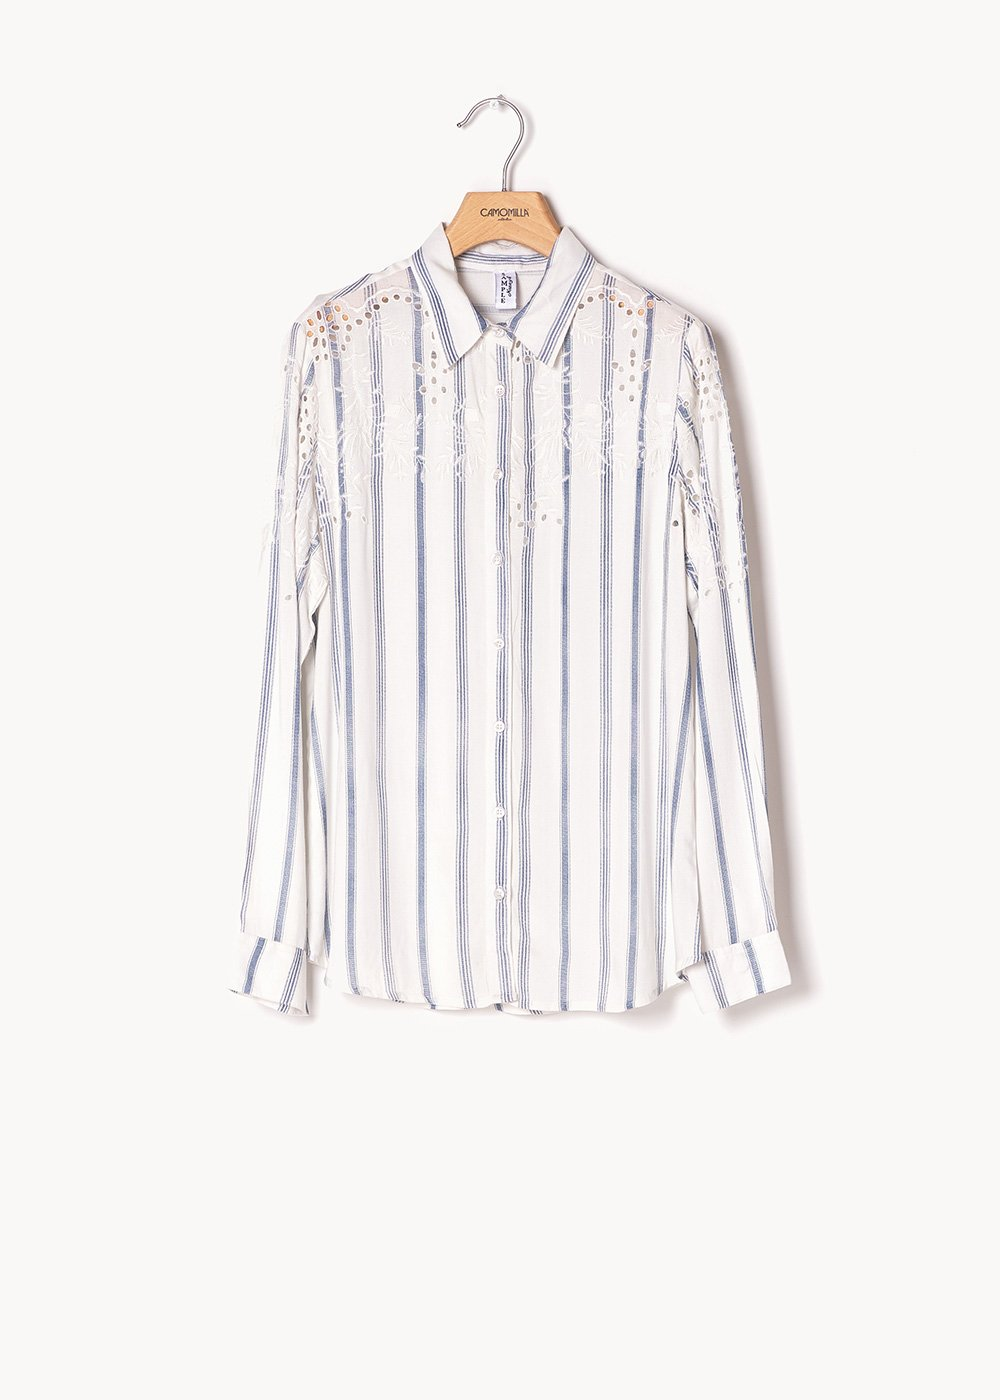 Camicia Calyd a righe con traforo - White / Avion /  Stripes - Donna